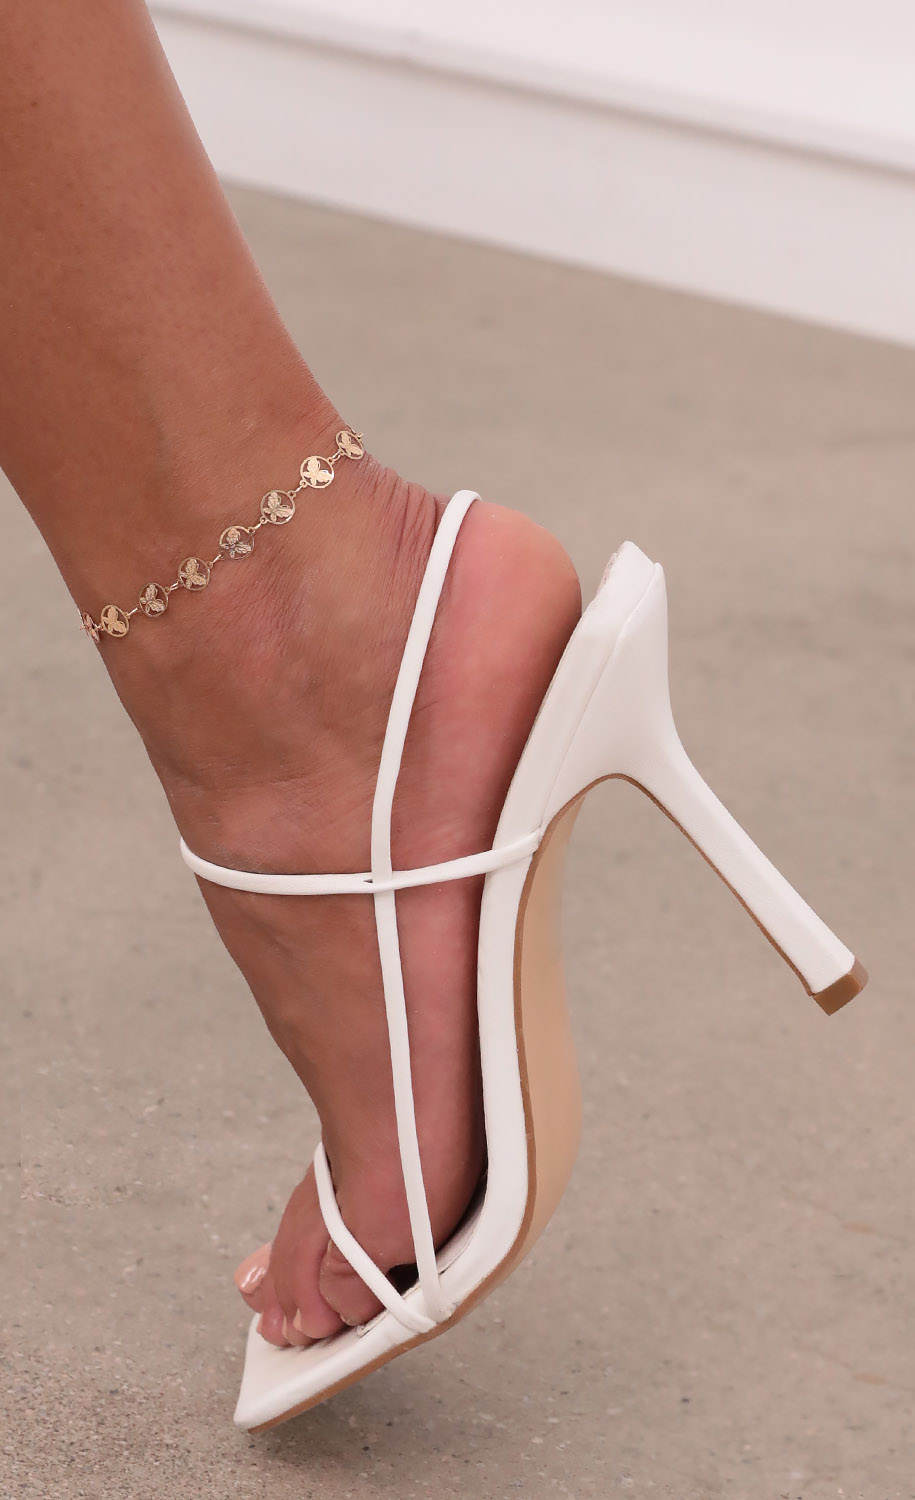 Lost Butterfly Anklet in Gold